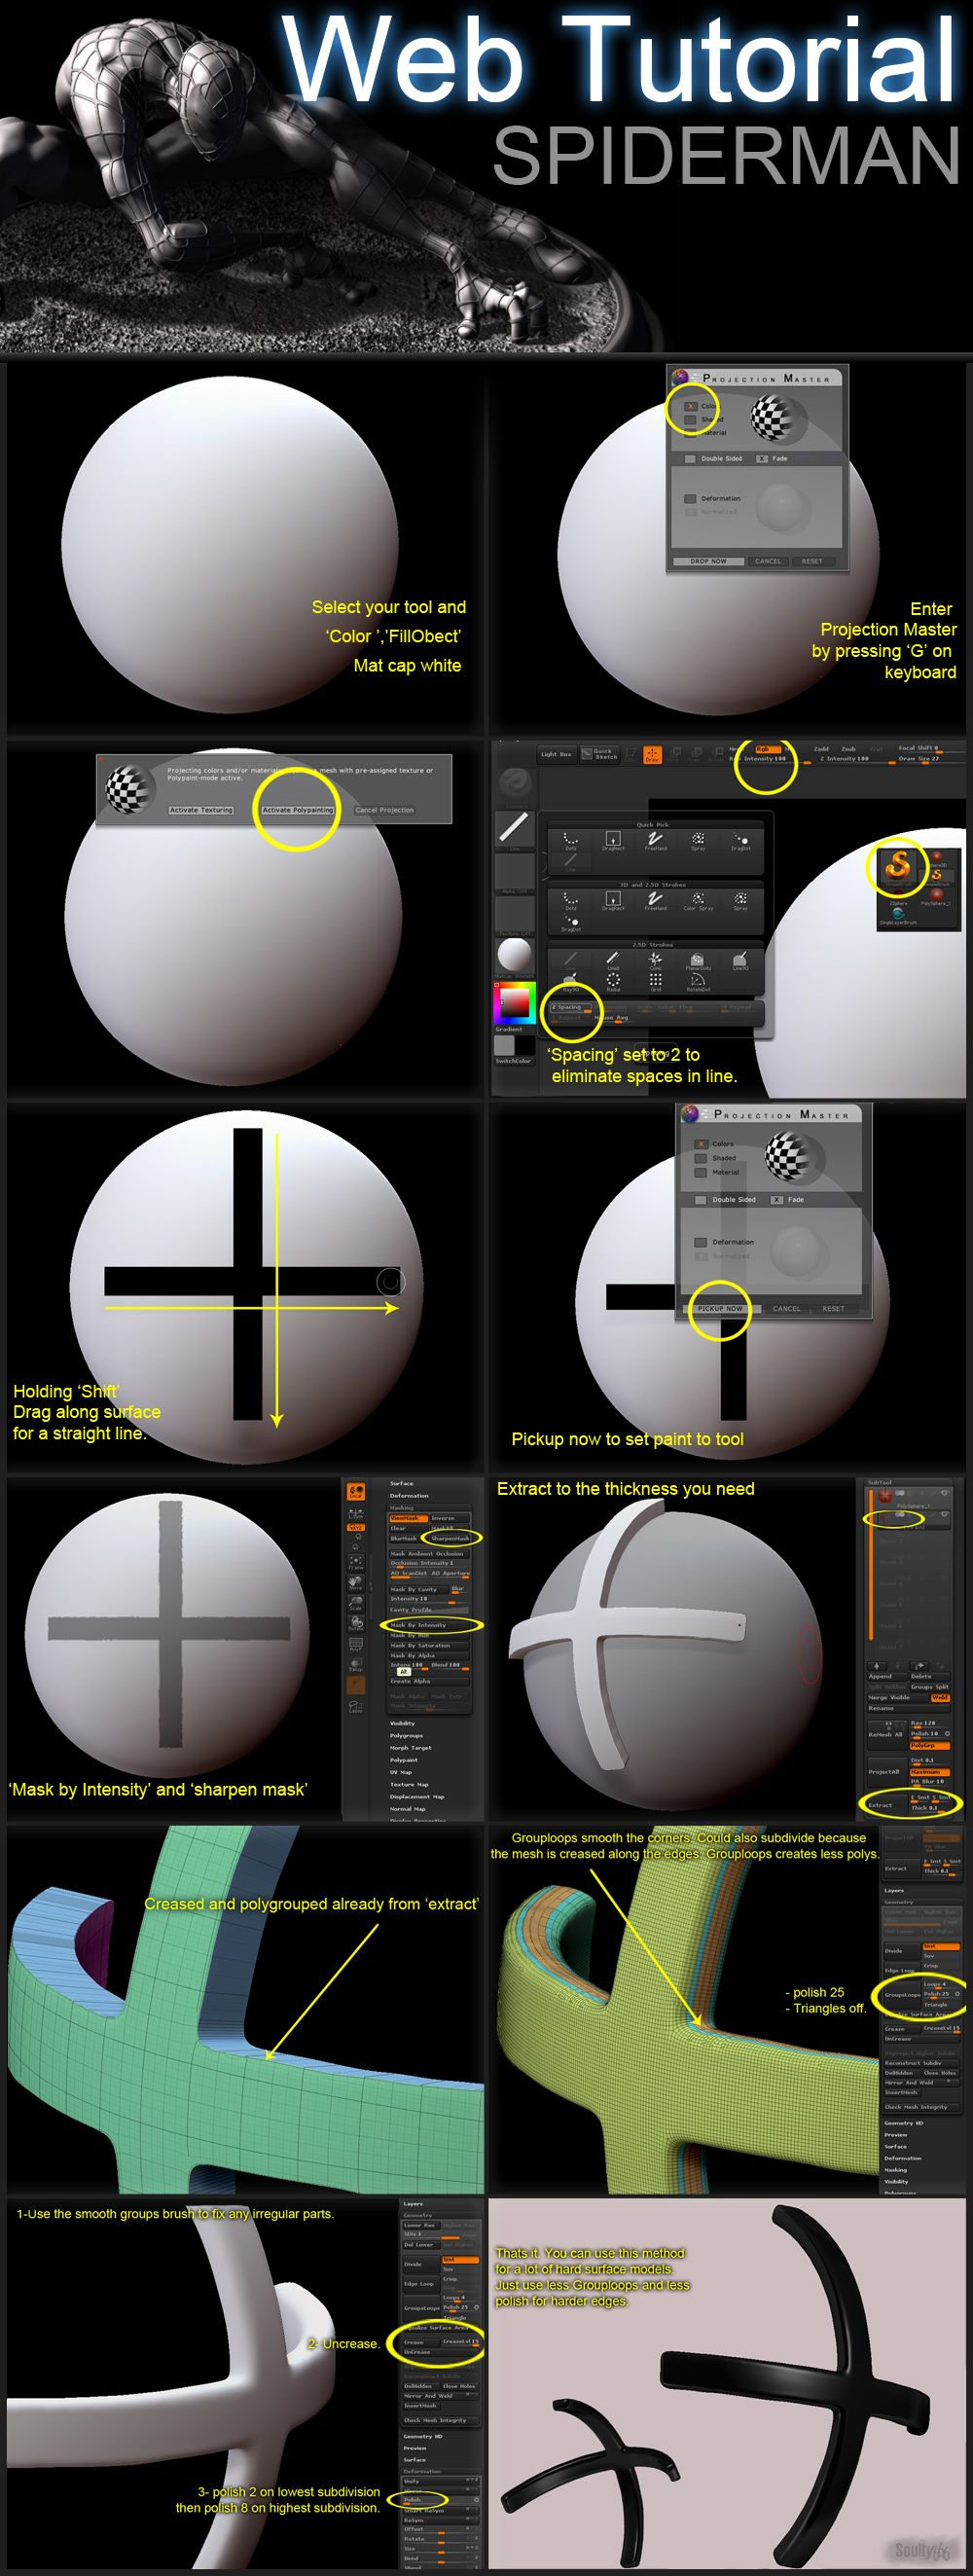 ZBRUSH tutorial by ~soulty666 on deviantART #3d #sculpting #tutorials